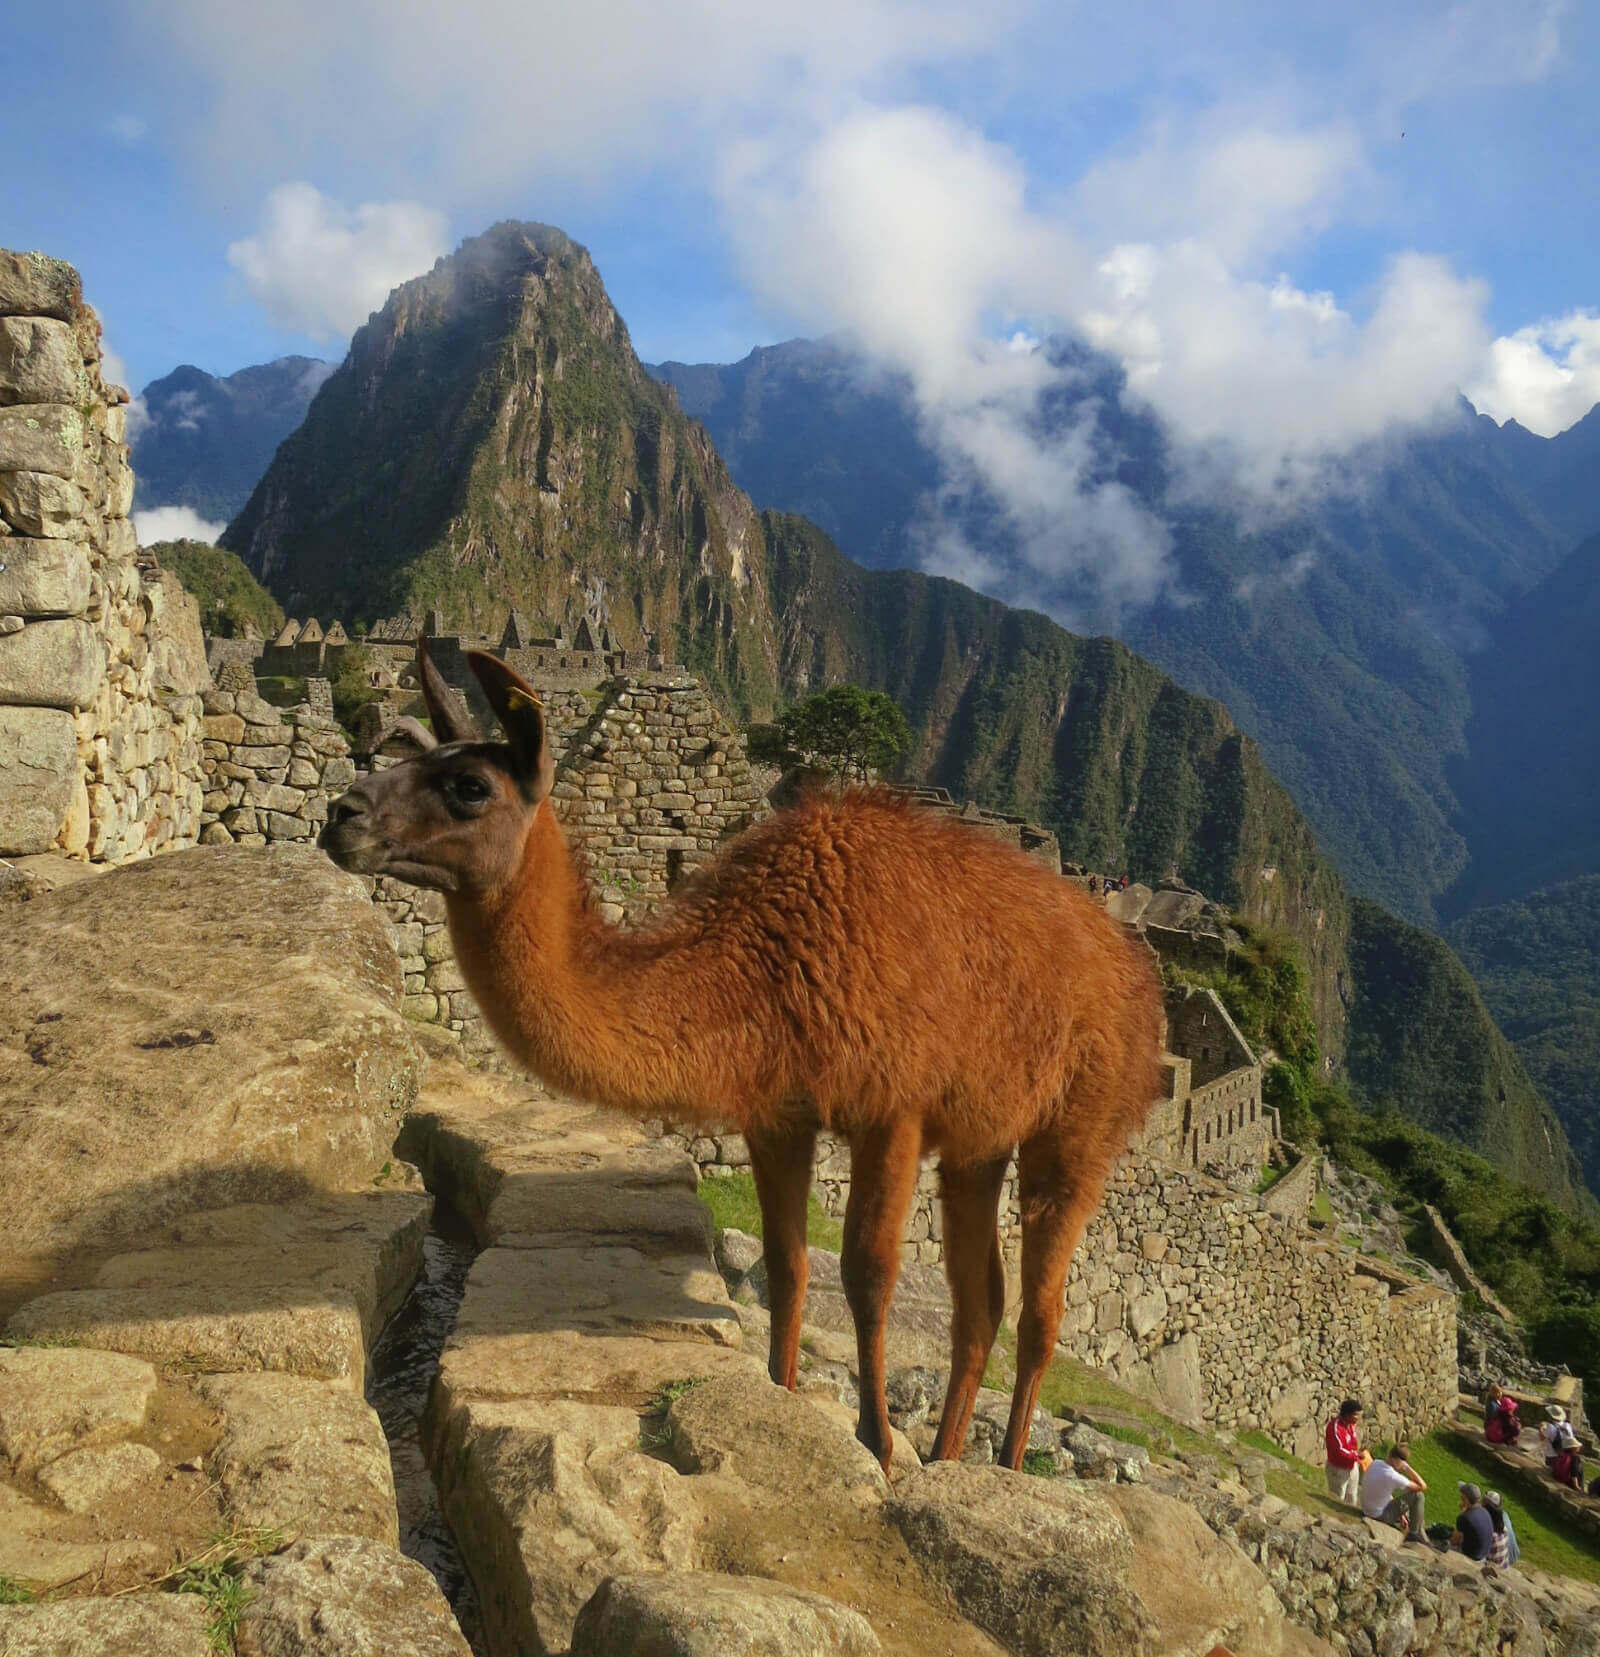 Llama in front of the ruins of Machu Picchu, Peru!